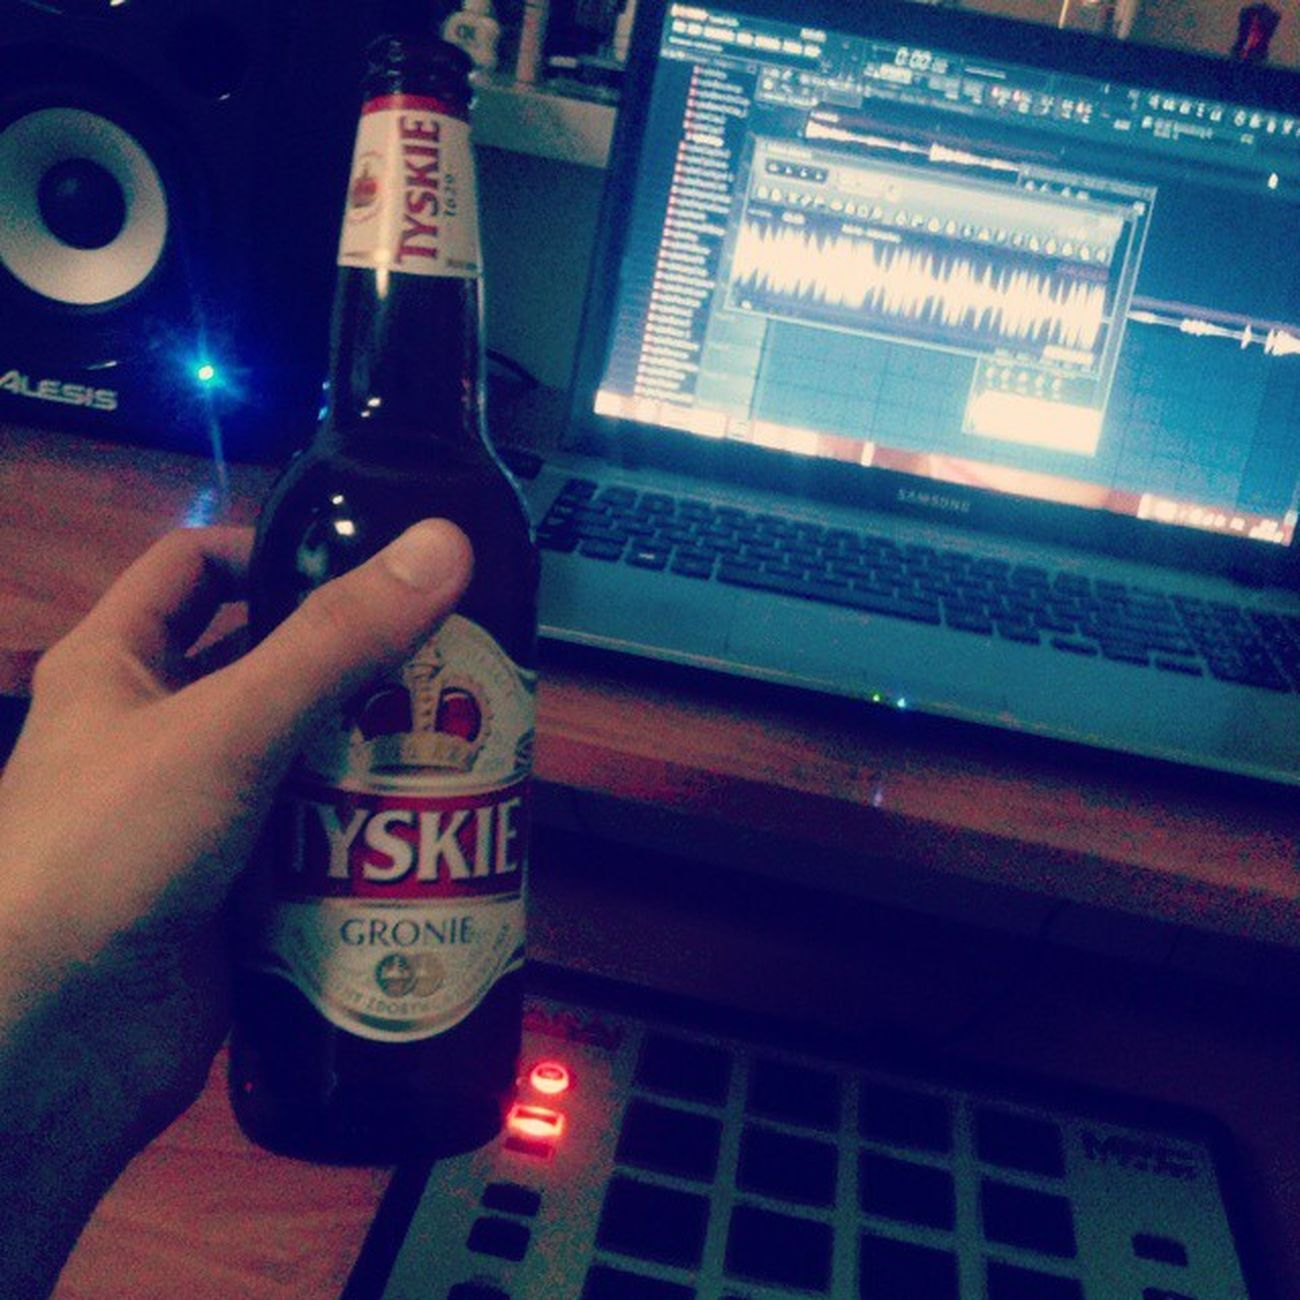 Ja nie spie ;) Beatmaking MPC Mpcelement Sampled HipHop Instrumentals Instagood Tyskie Piwko Nightlife